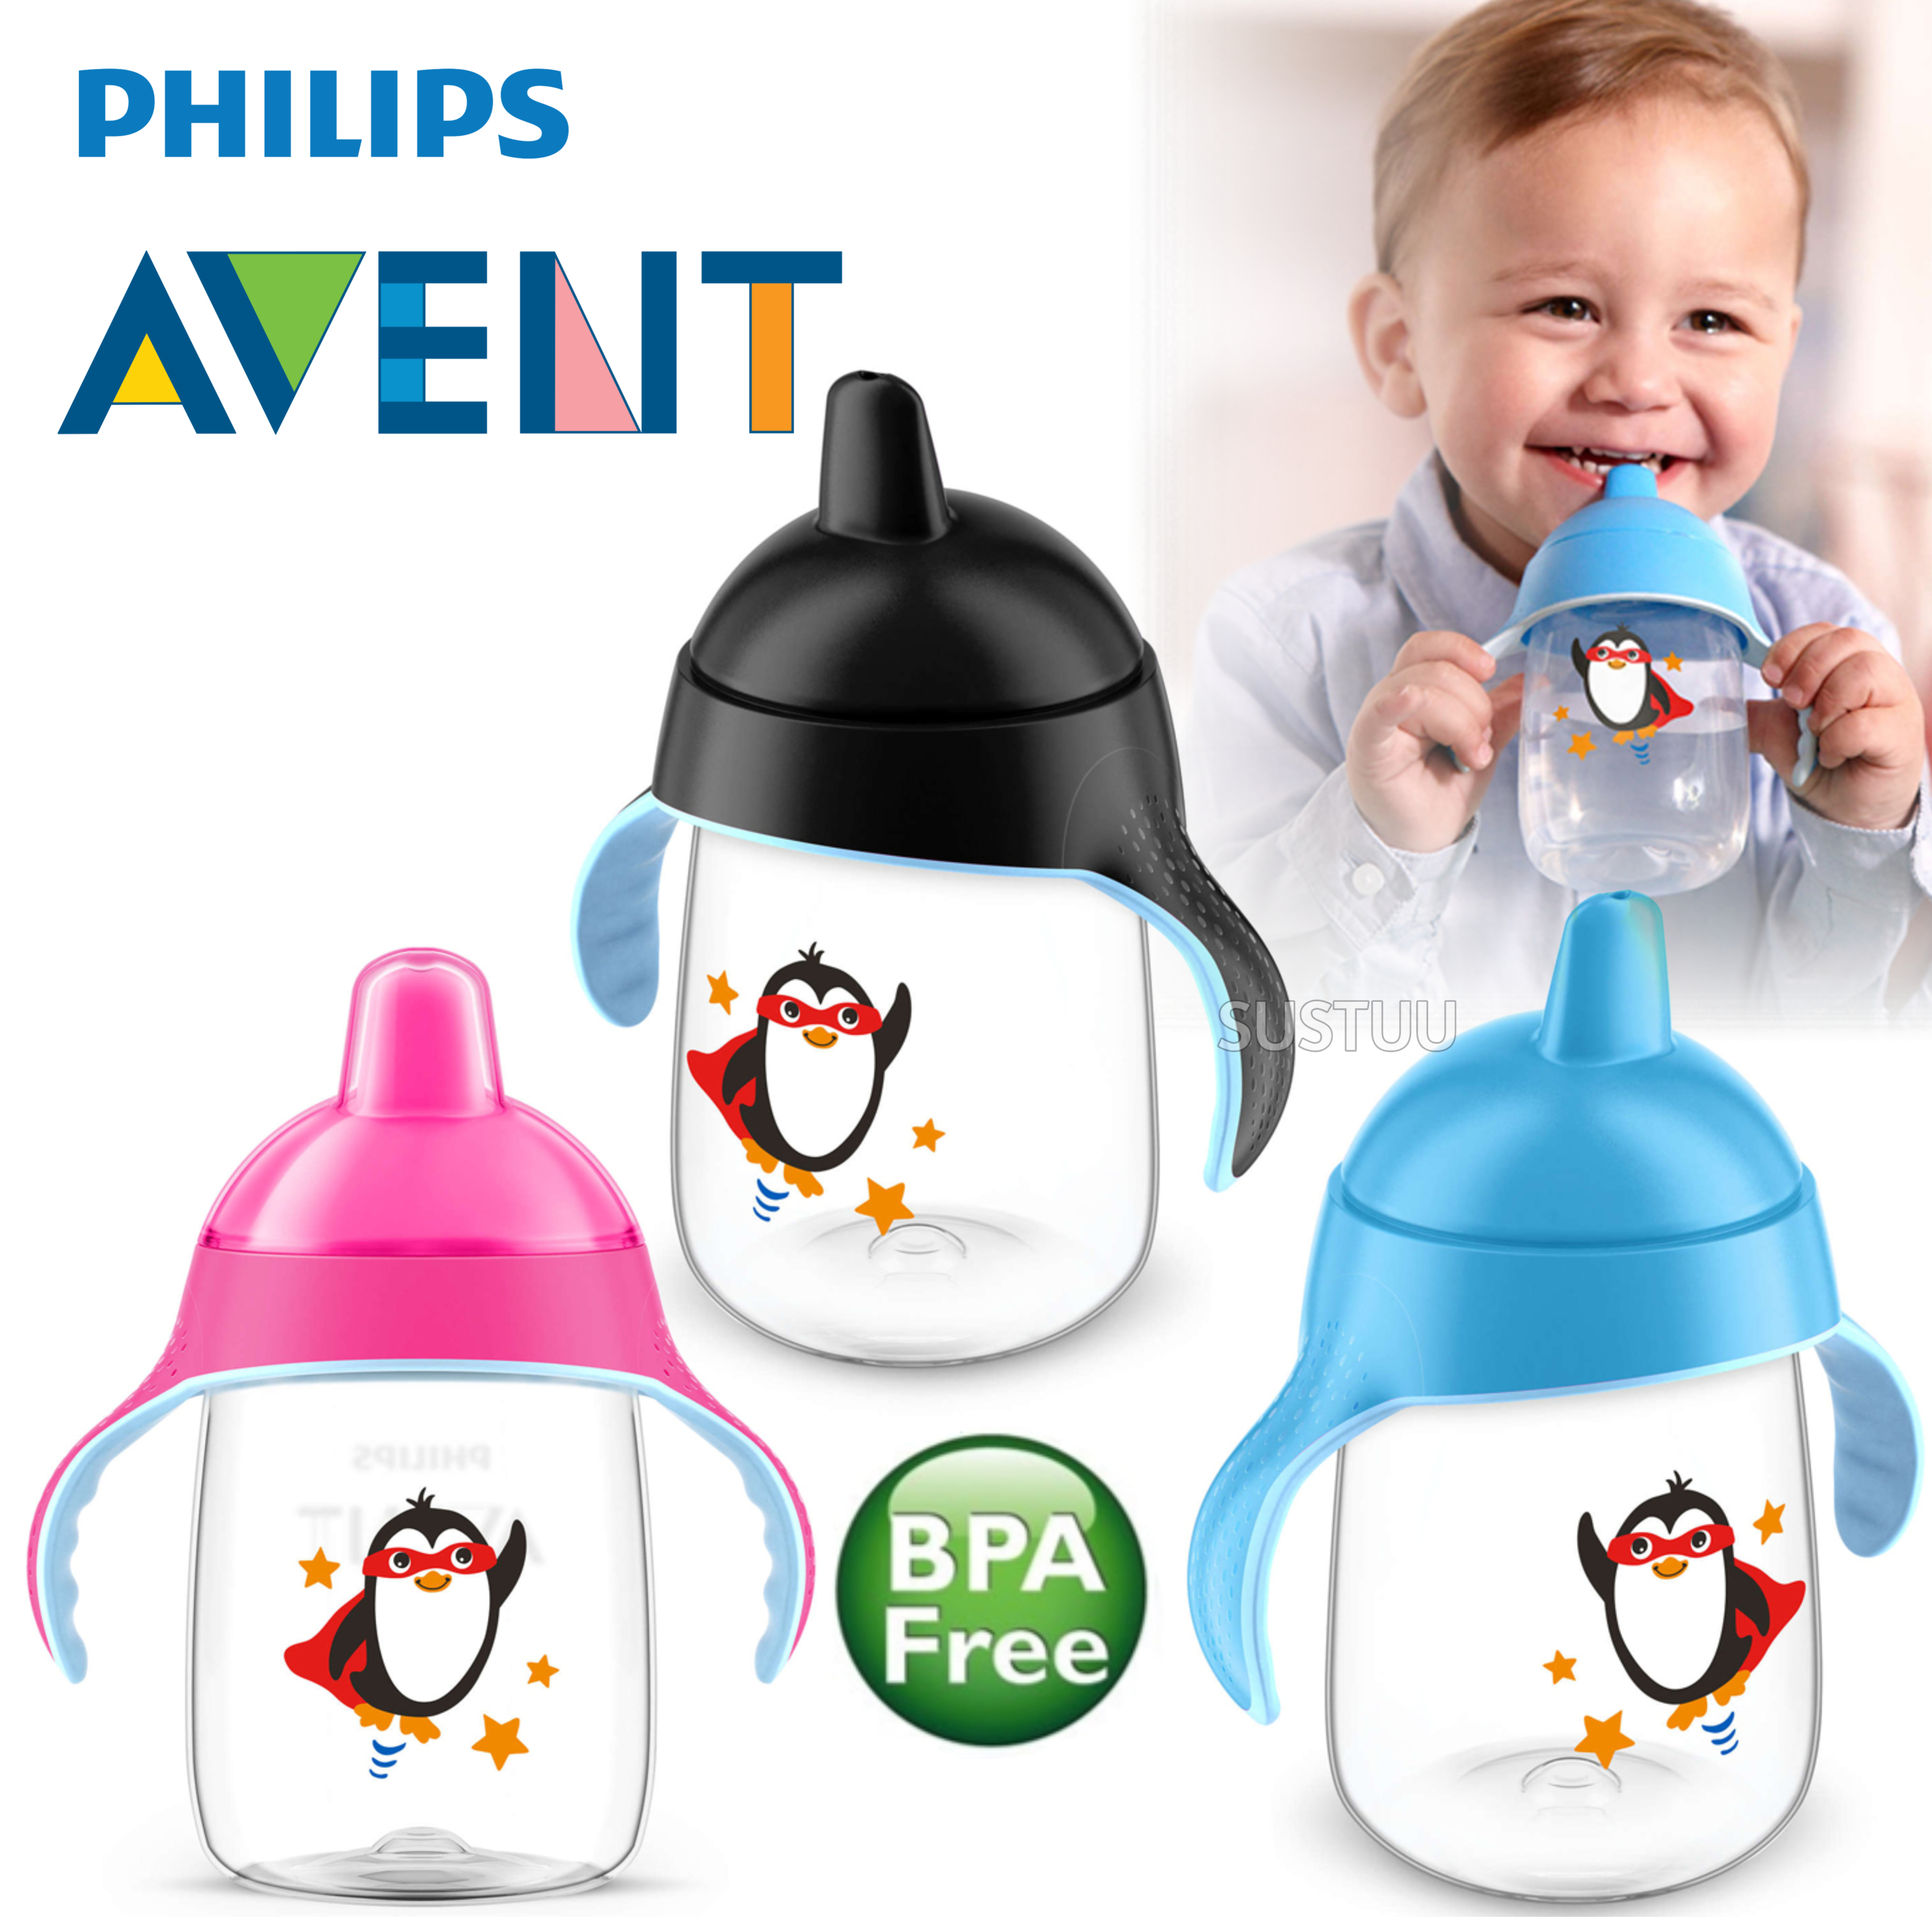 Philips Avent Premium Baby Spout Cup|Independent Drink|Hygiene Cap|BPA Free|340m